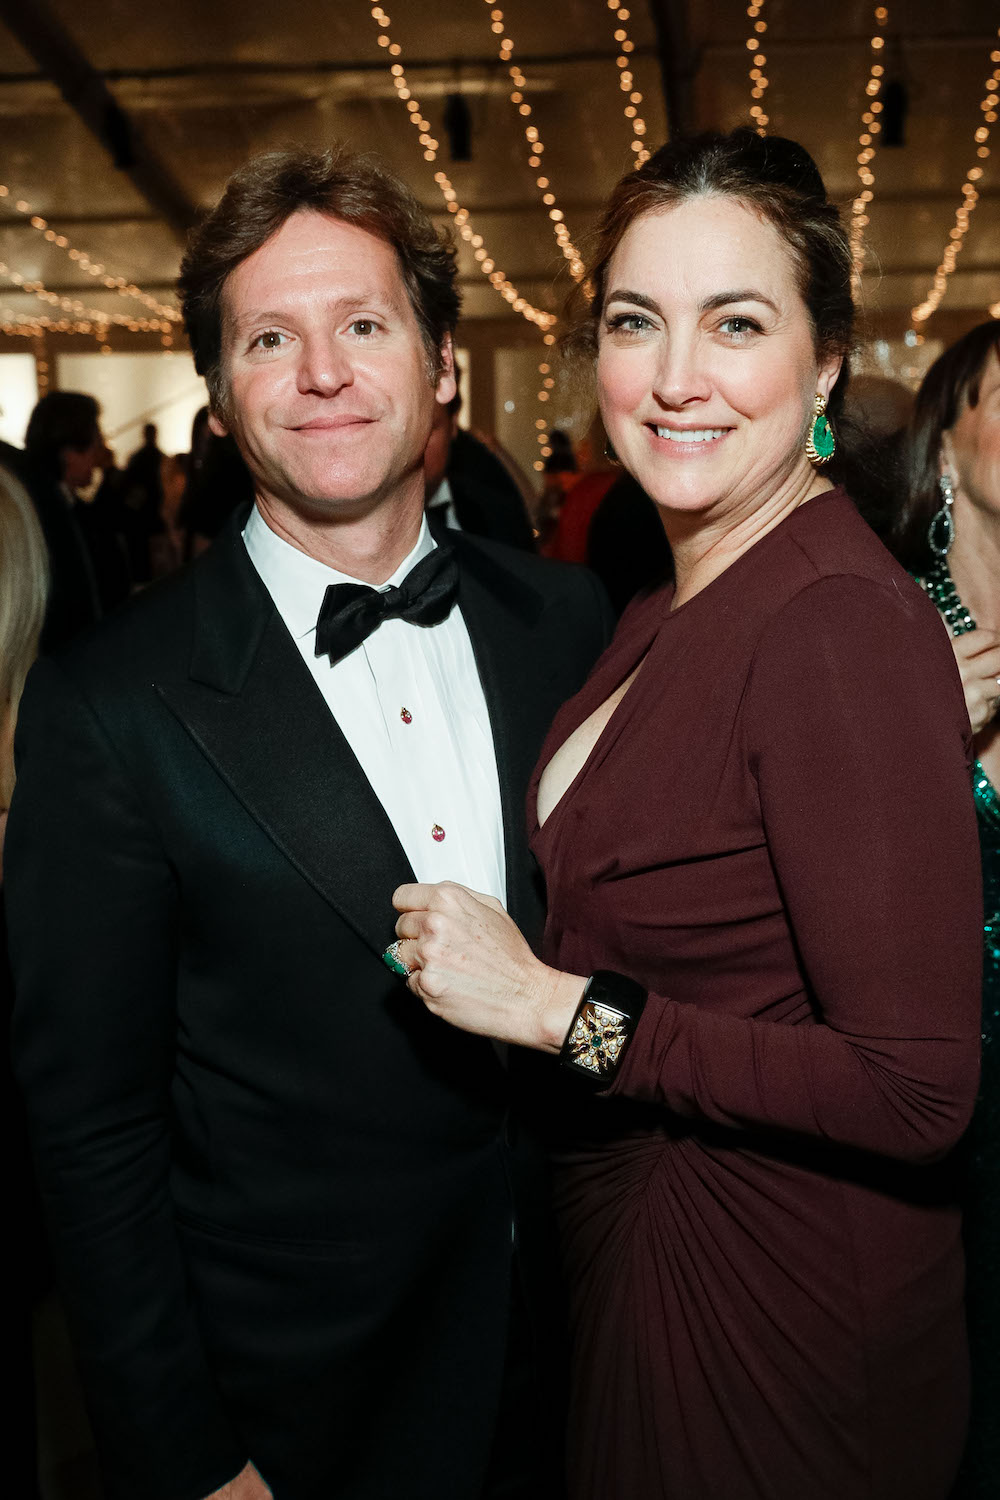 Trevor Traina and Alexis Traina at an event at the Legion of Honor on December 12, 2017